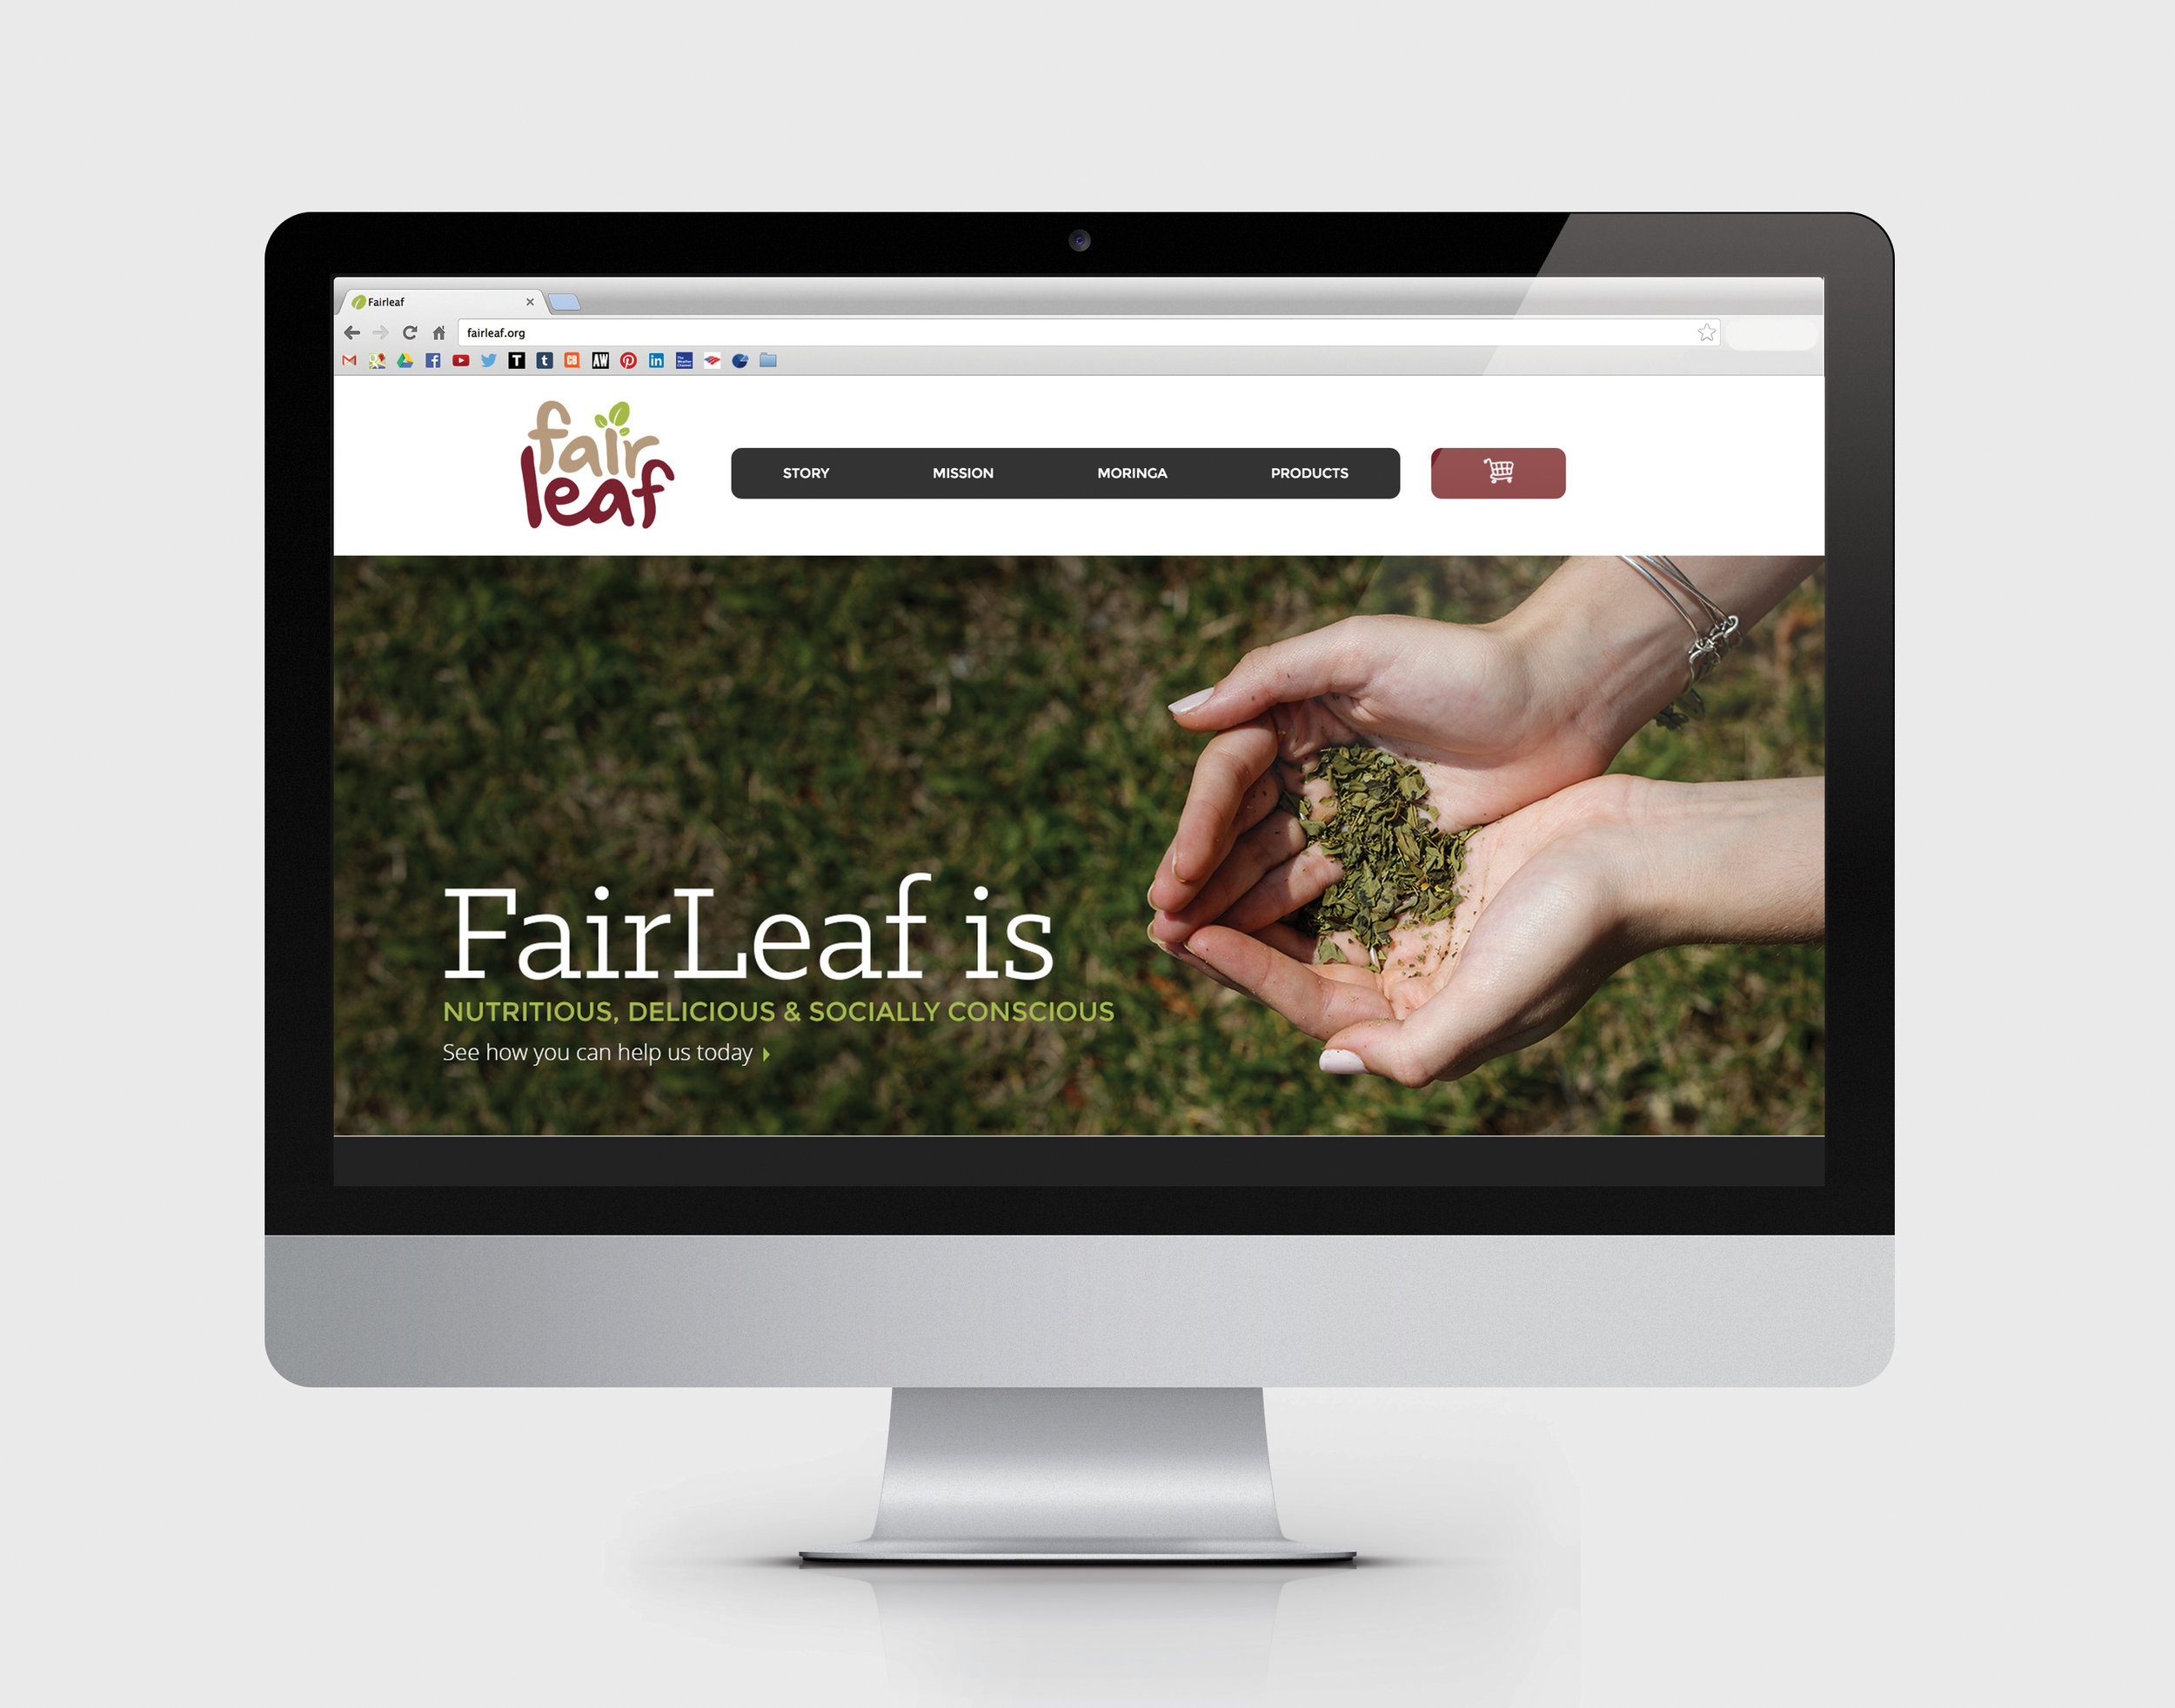 Work_Fairleaf_Web2.jpg